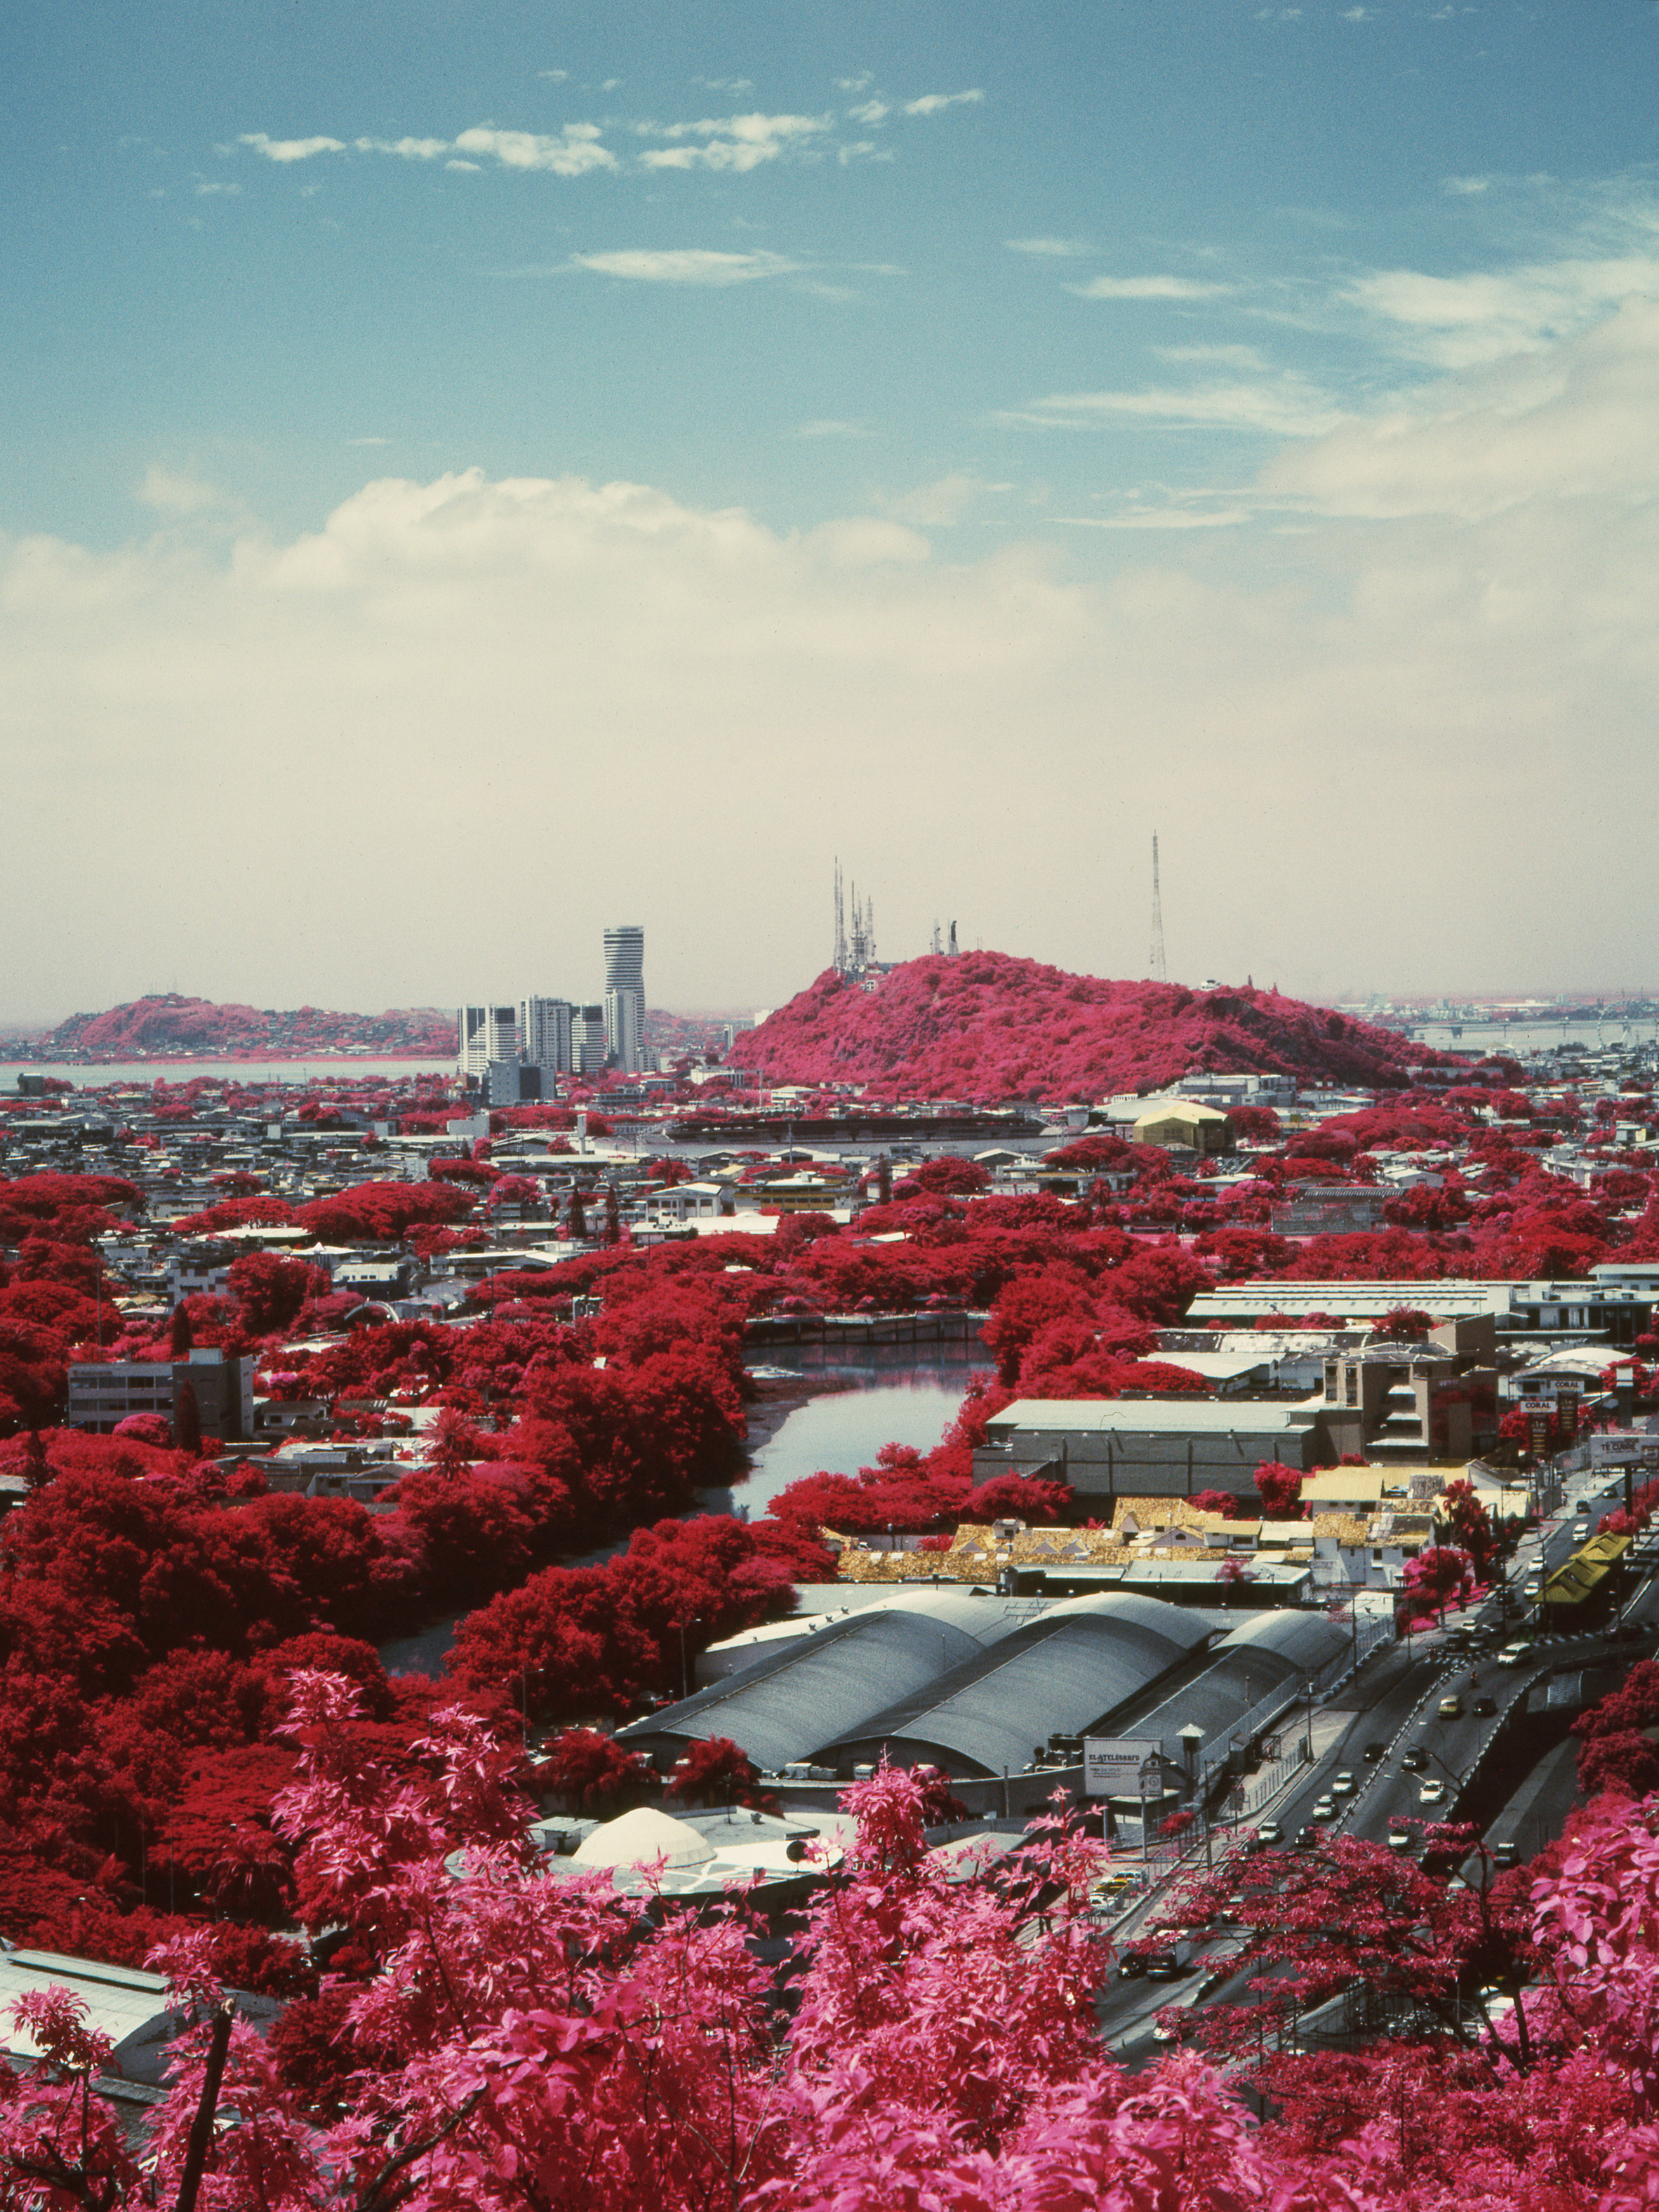 Vicente Muñoz's infrared photos highlight the battle between city and nature